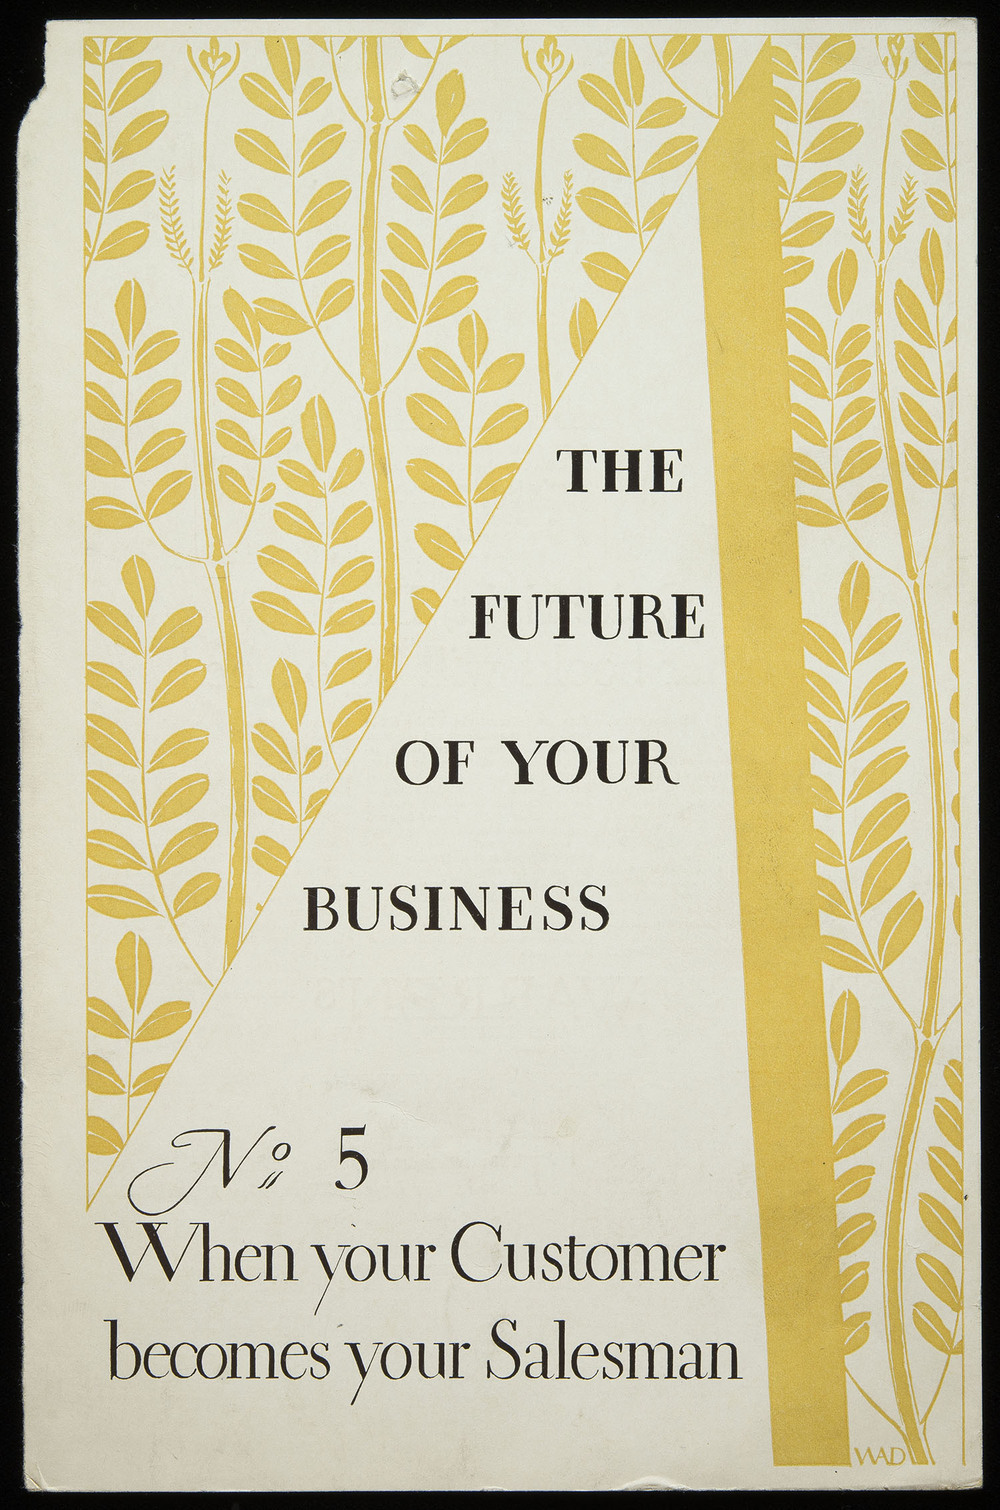 Advertisement for Warren's Paper, circa 1930, 15.5 x 23.5 cm